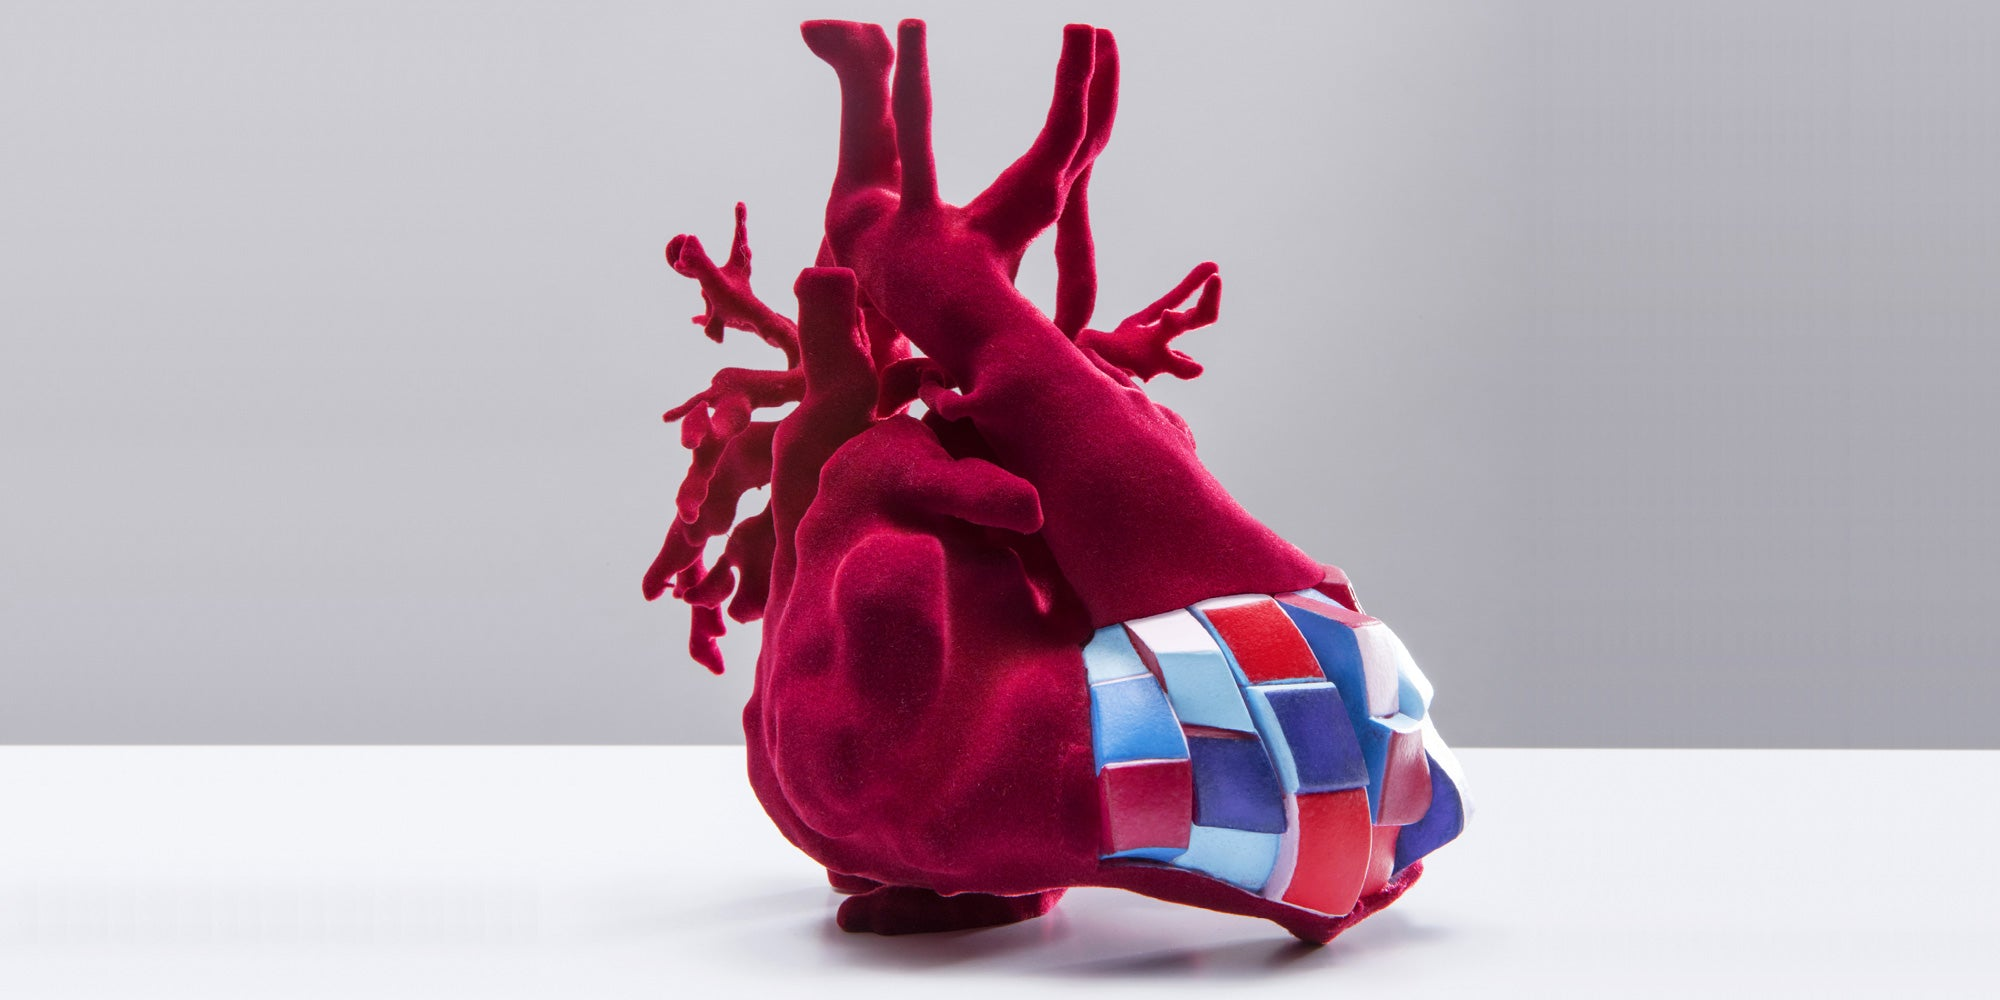 Exhibit Features 3D Printed Hearts and Stories Behind Them